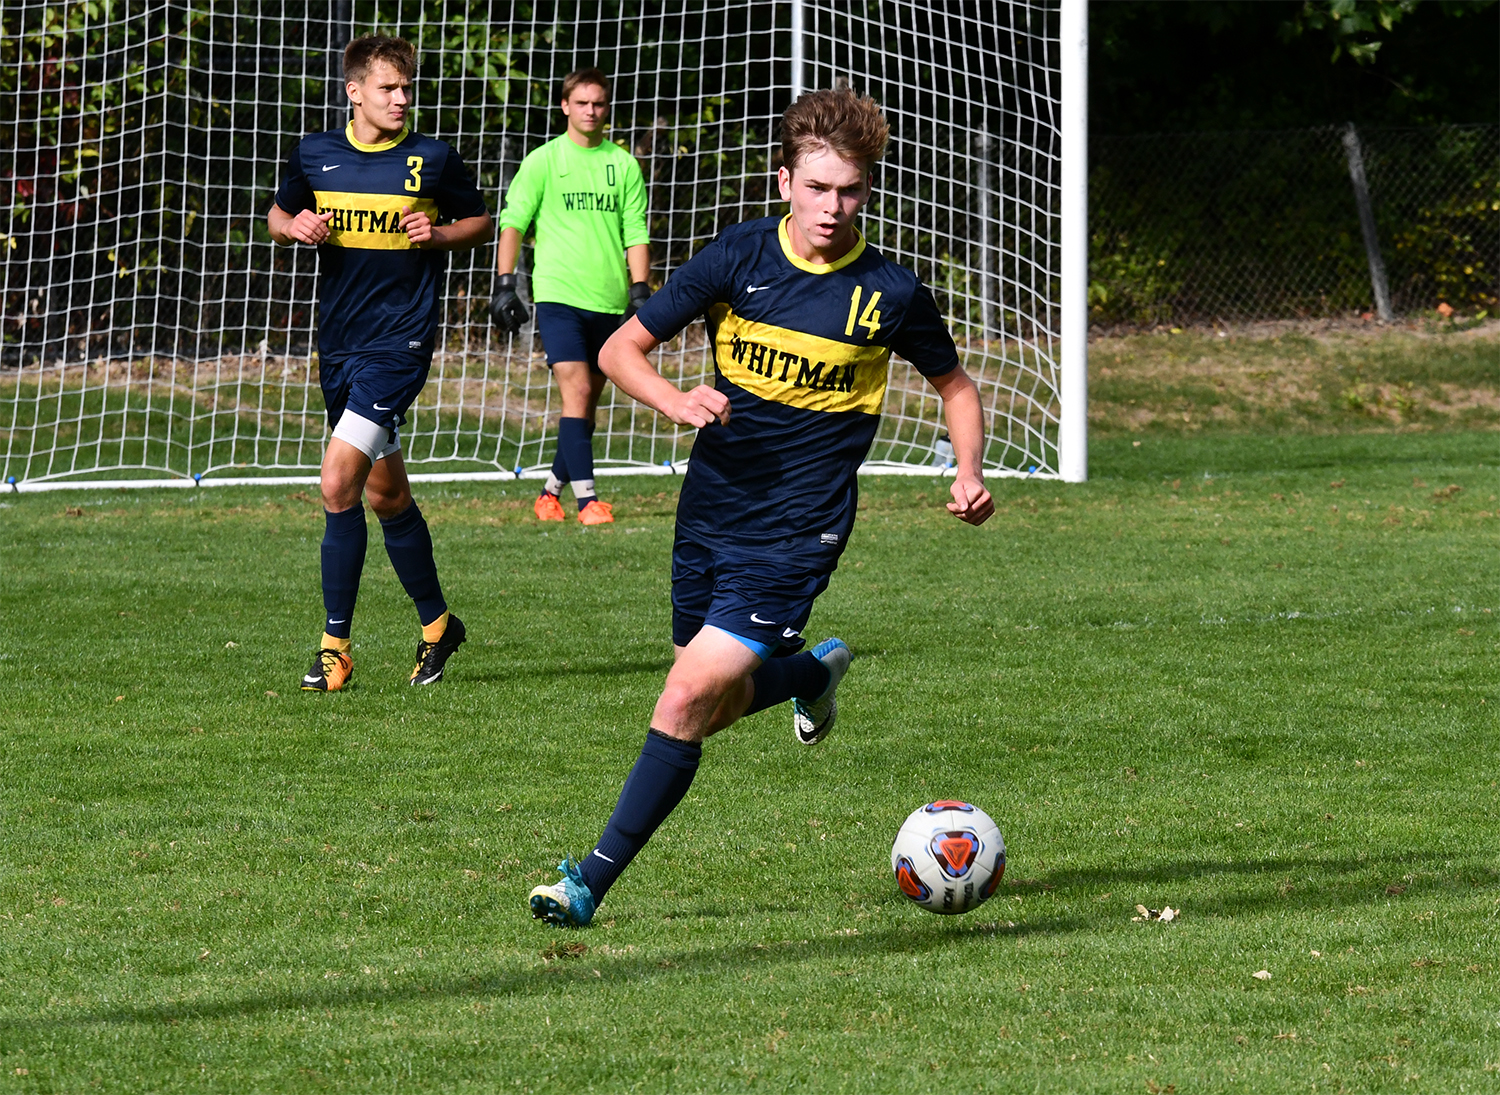 Blues Bounce Back, Earn Hard-Fought Win Over Puget Sound ...